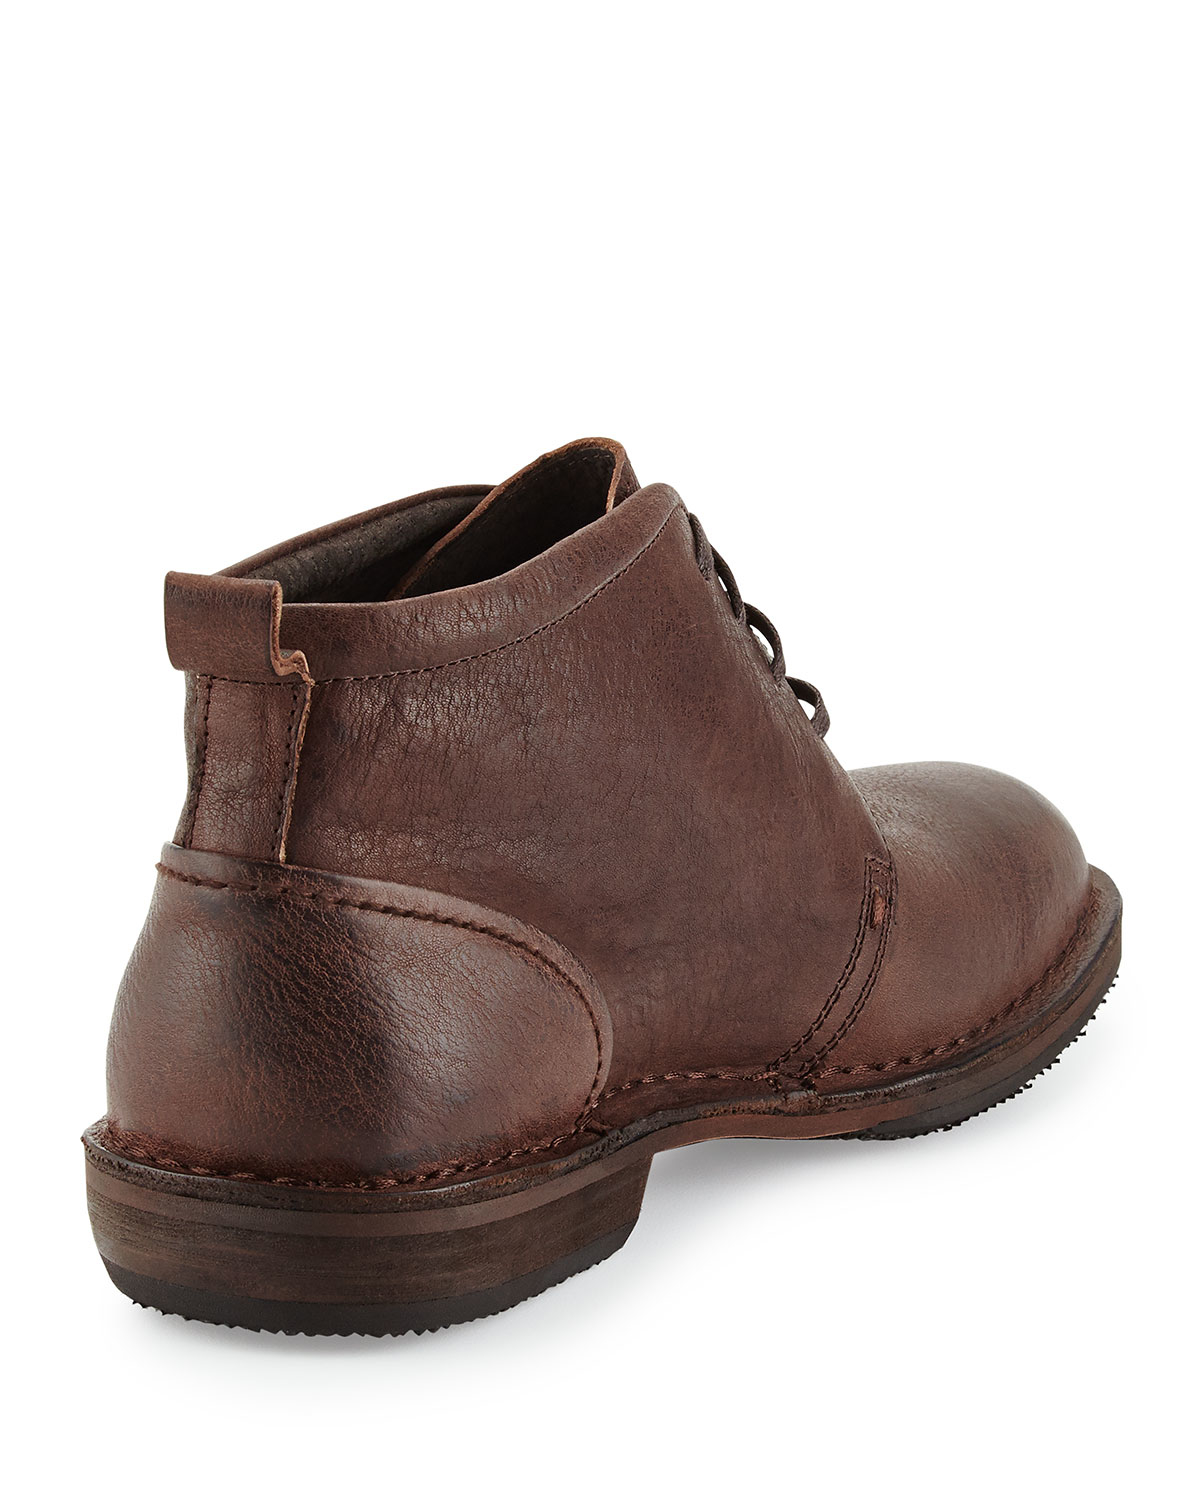 andrew marc greenwich leather chukka boot in brown for